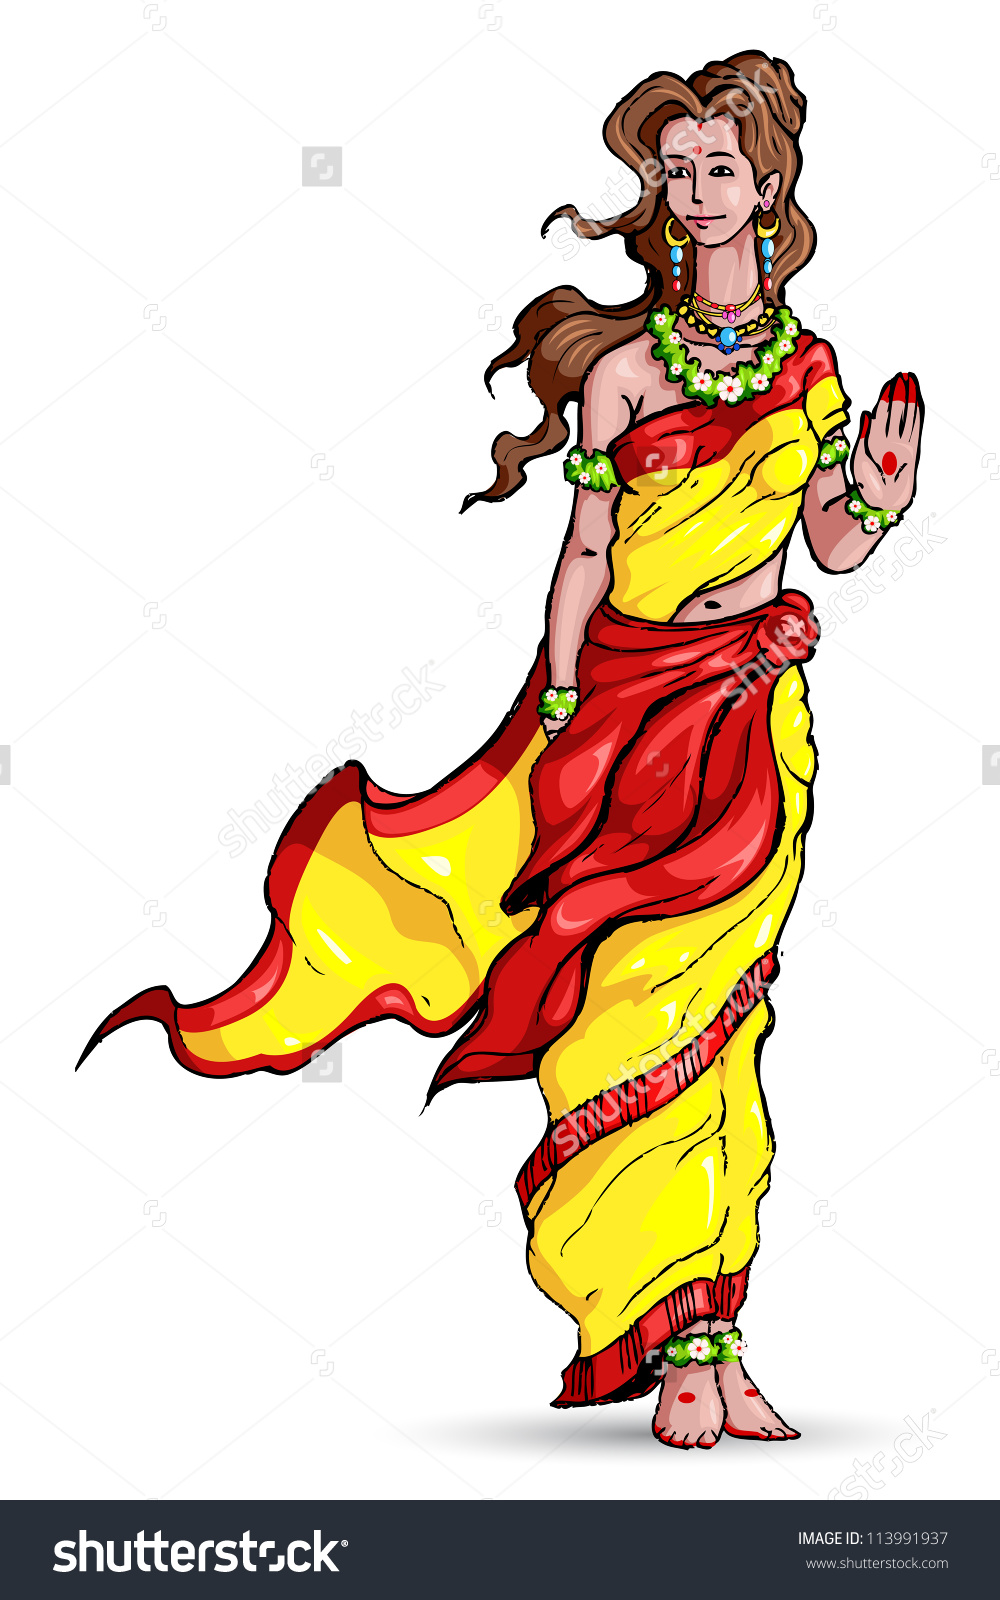 Vector Illustration Goddess Sita Ramayana Stock Vector 113991937.